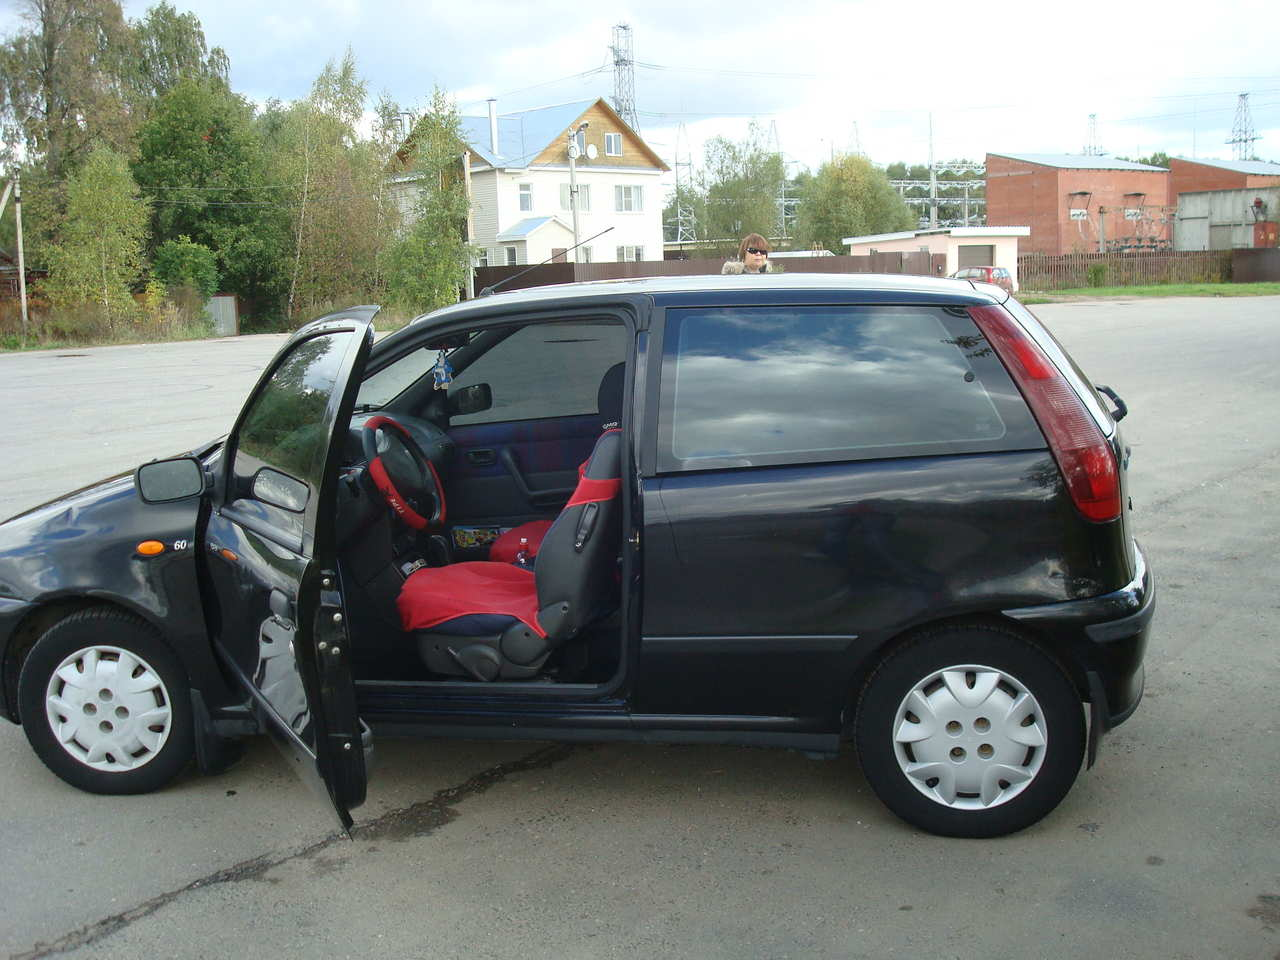 used 1999 fiat punto photos 1300cc gasoline ff automatic for sale. Black Bedroom Furniture Sets. Home Design Ideas